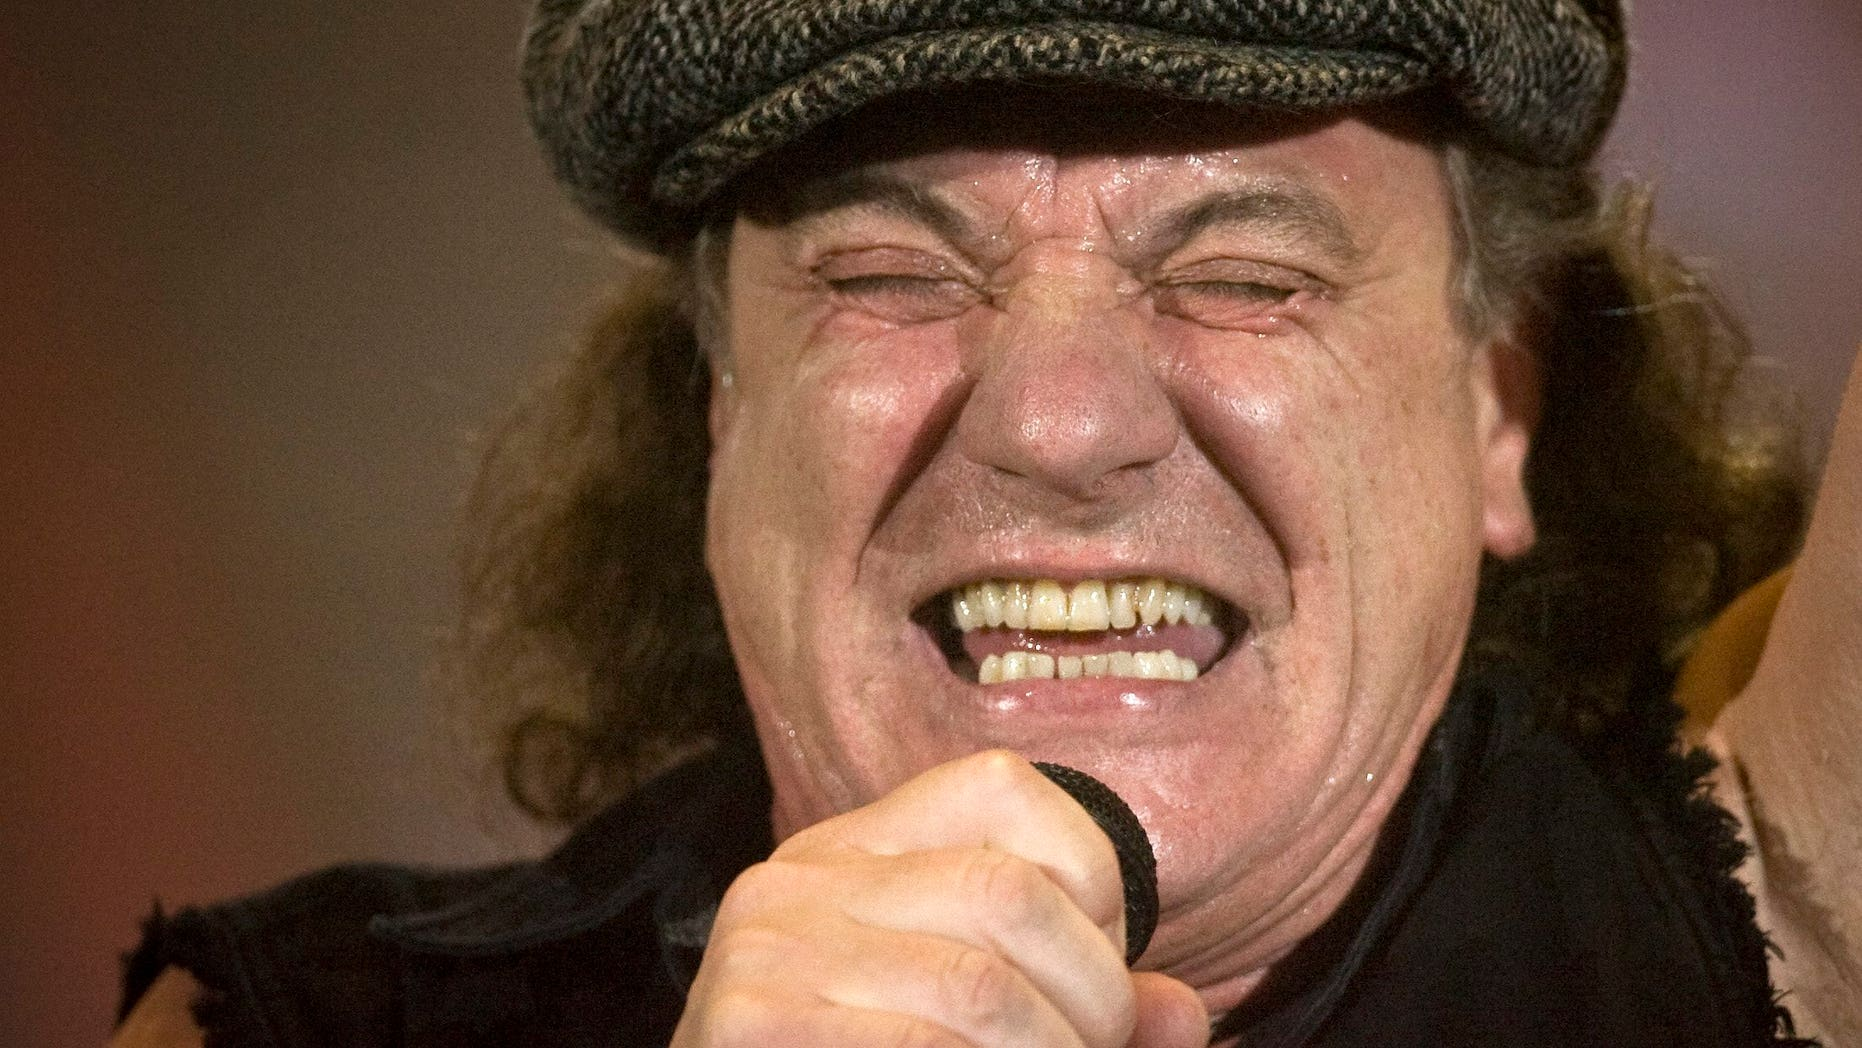 April 6, 2009. Brian Johnson, lead singer of Australian rock band AC/DC, performs during a concert at the Hallestadion in Zurich, Switzerland.